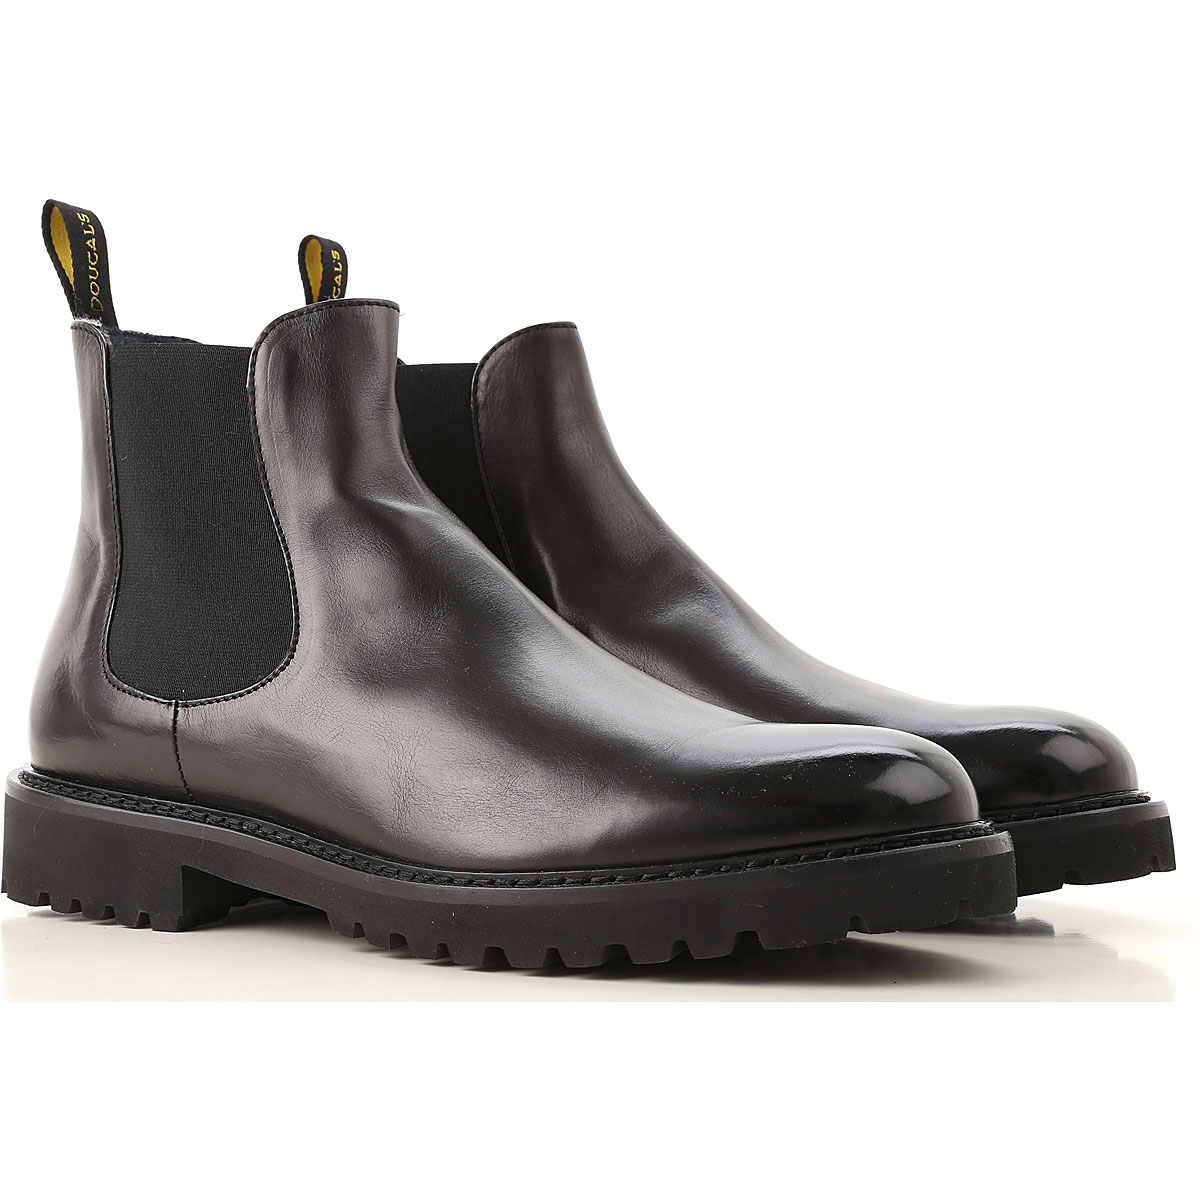 Image of Doucals Chelsea Boots for Men, Black, Leather, 2017, 10 10.5 7.5 8 9